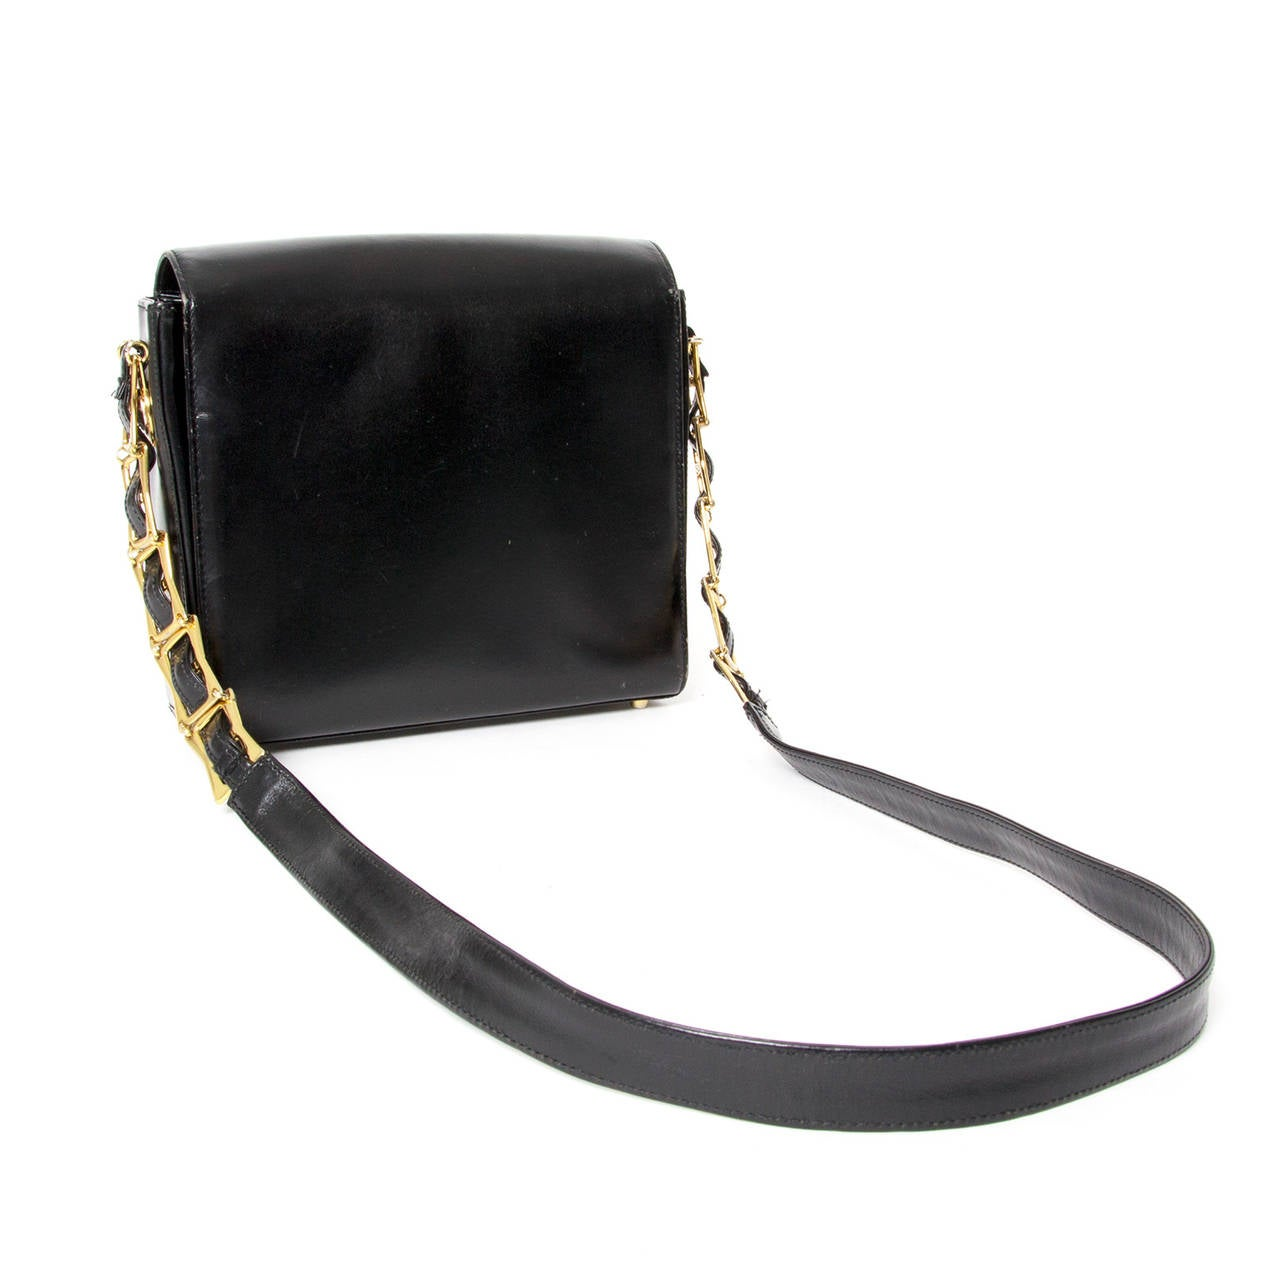 Gianni Versace Black Leather Medusa Handbag  Beautiful vintage Gianni Versace handbag with golden Medusa logo on the front and on the sides.   The bag is easy to wear thanks to the black leather with goldplated chain shoulderstrap. It can be